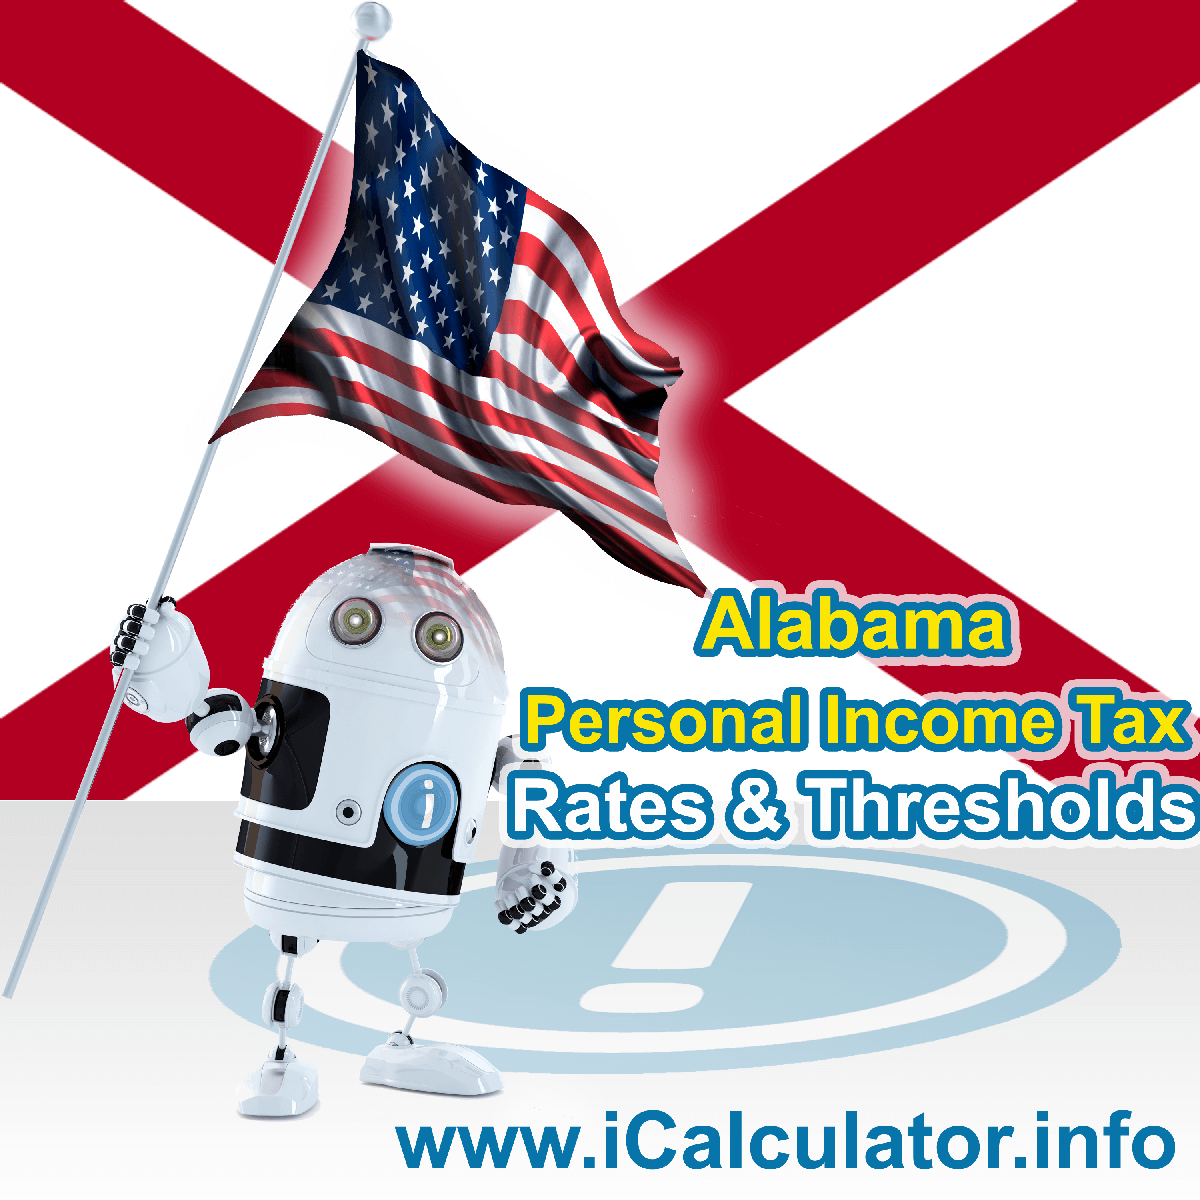 Alabama State Tax Tables 2020. This image displays details of the Alabama State Tax Tables for the 2020 tax return year which is provided in support of the 2020 US Tax Calculator